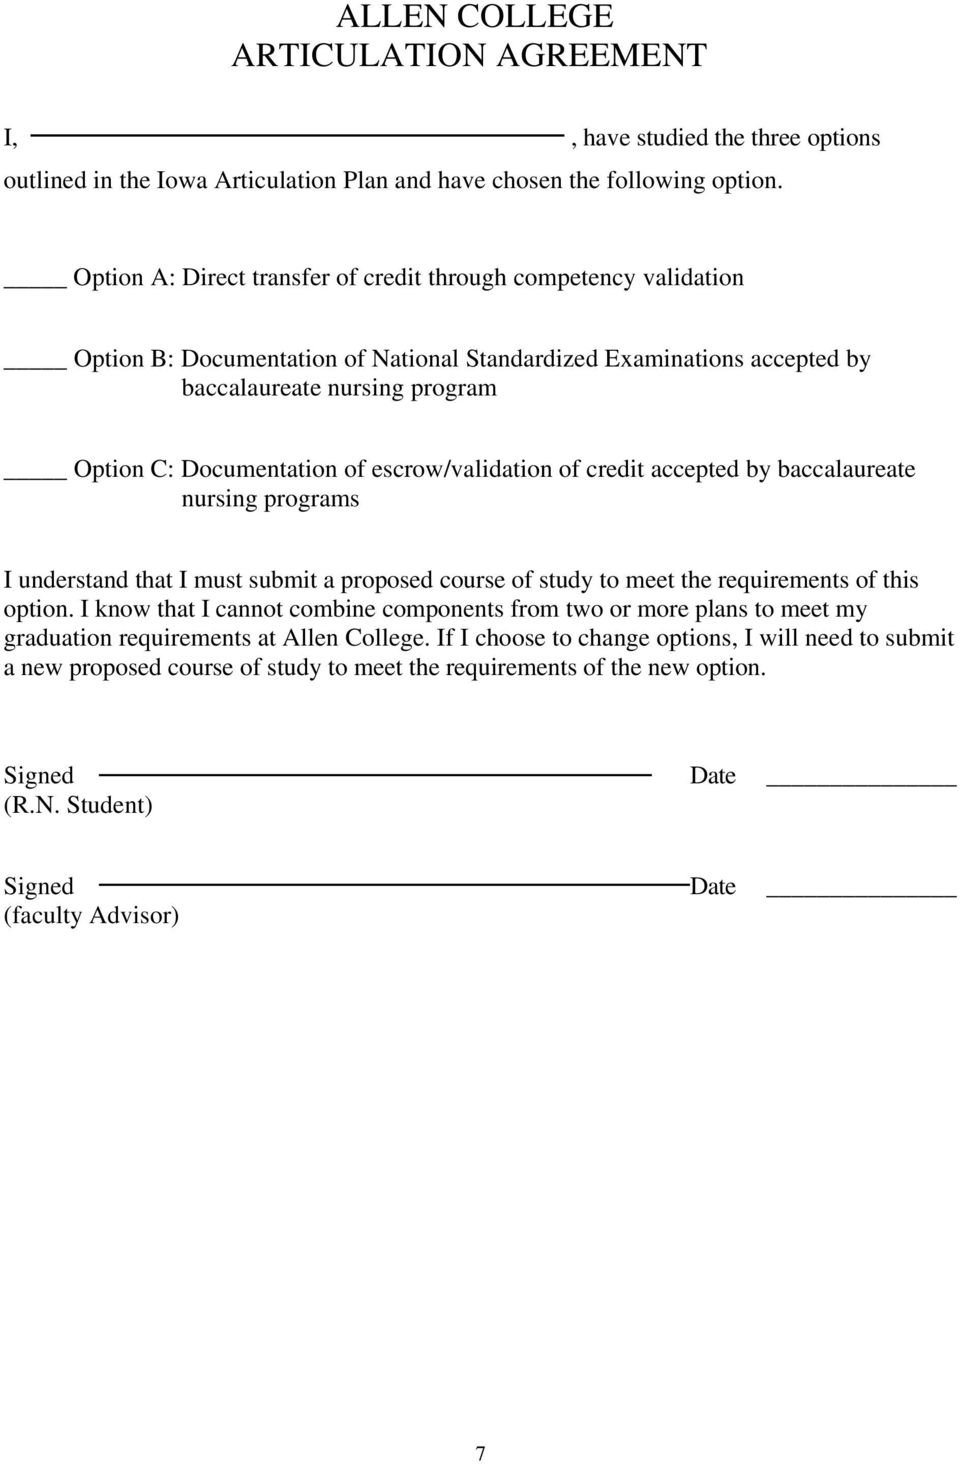 escrow/validation of credit accepted by baccalaureate nursing programs I understand that I must submit a proposed course of study to meet the requirements of this option.